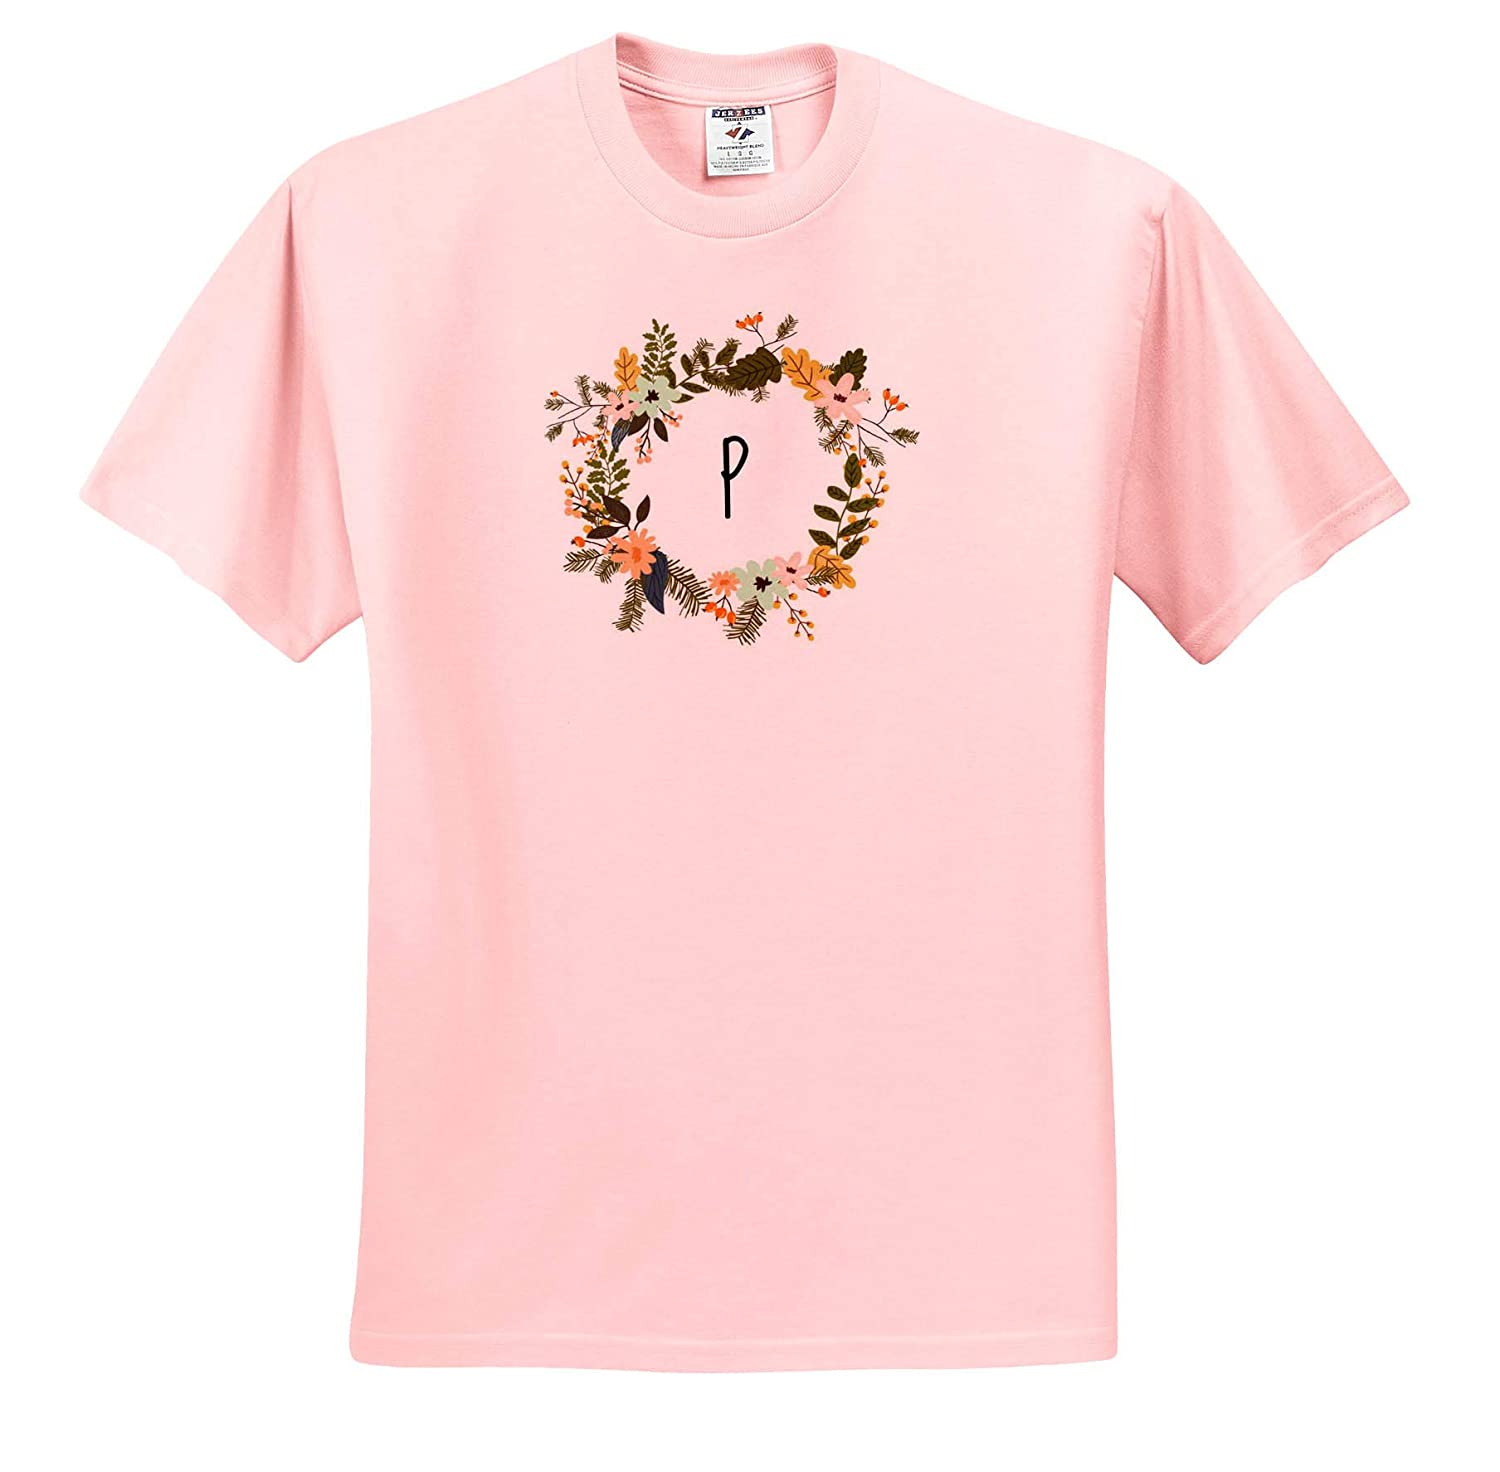 T-Shirts Image of P Floral Monogram Quote 3dRose Gabriella B